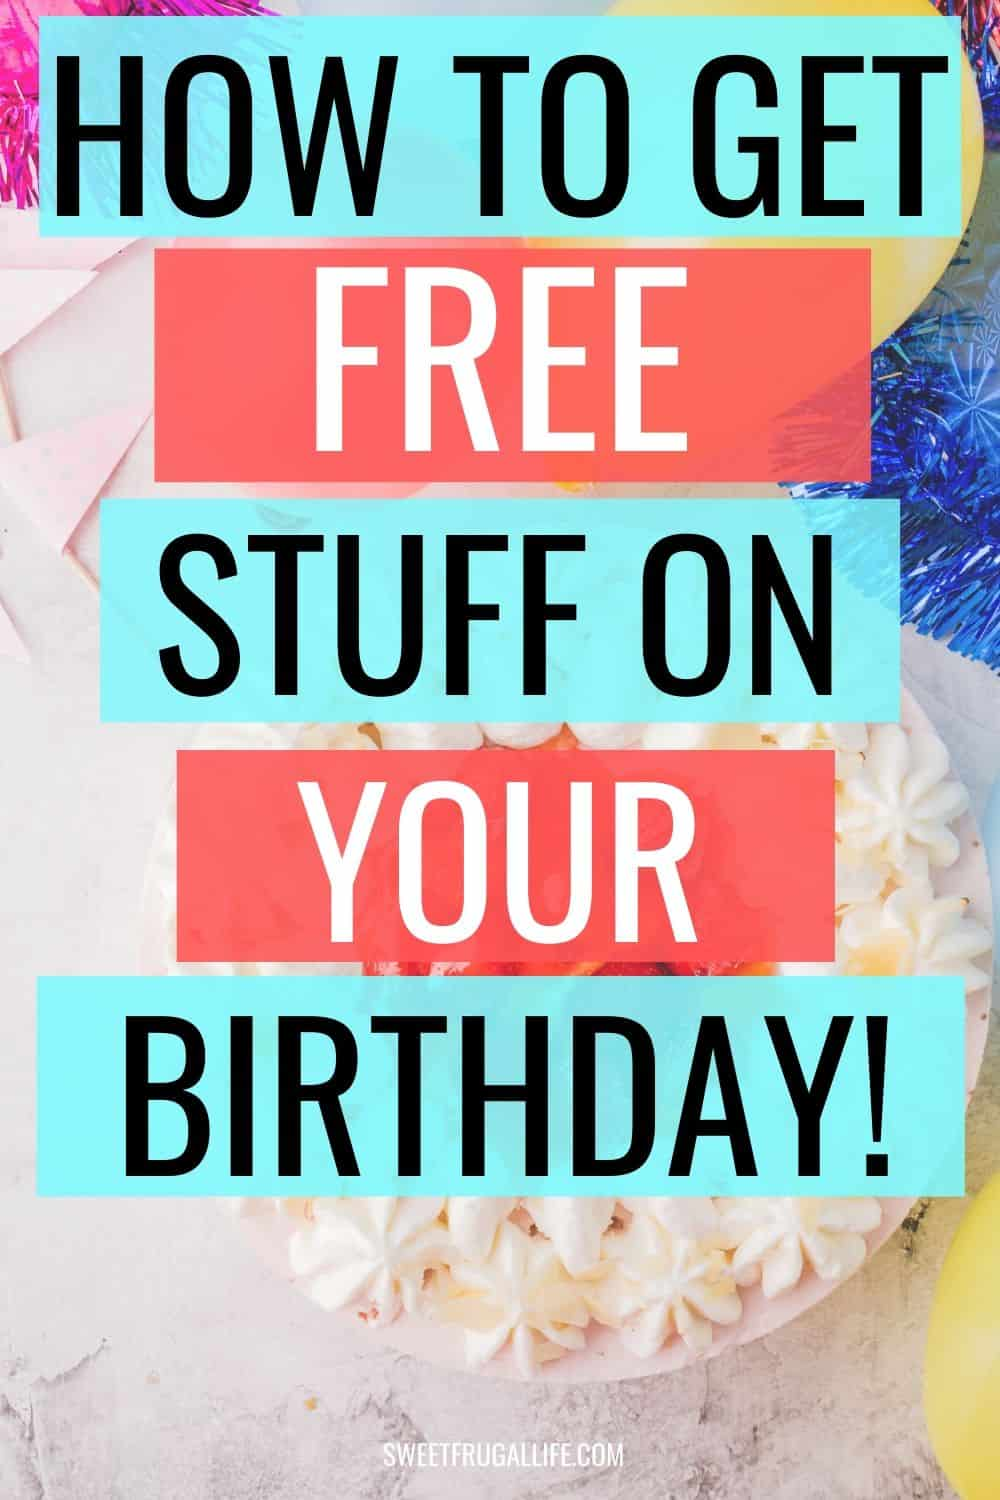 How to get free stuff on your birthday